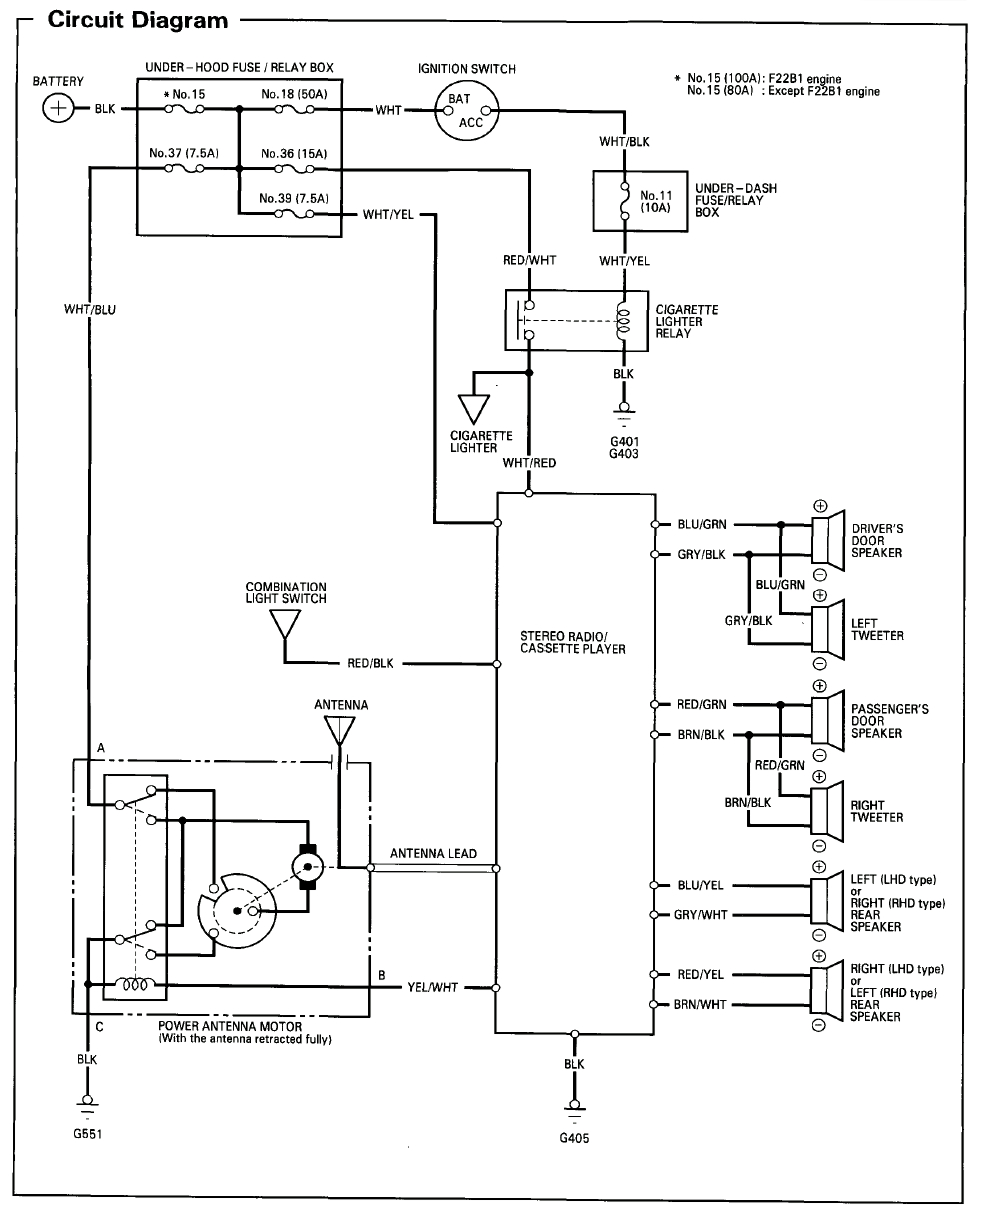 2002 Honda Accord Wiring Diagram Gallery | Wiring Diagram ...